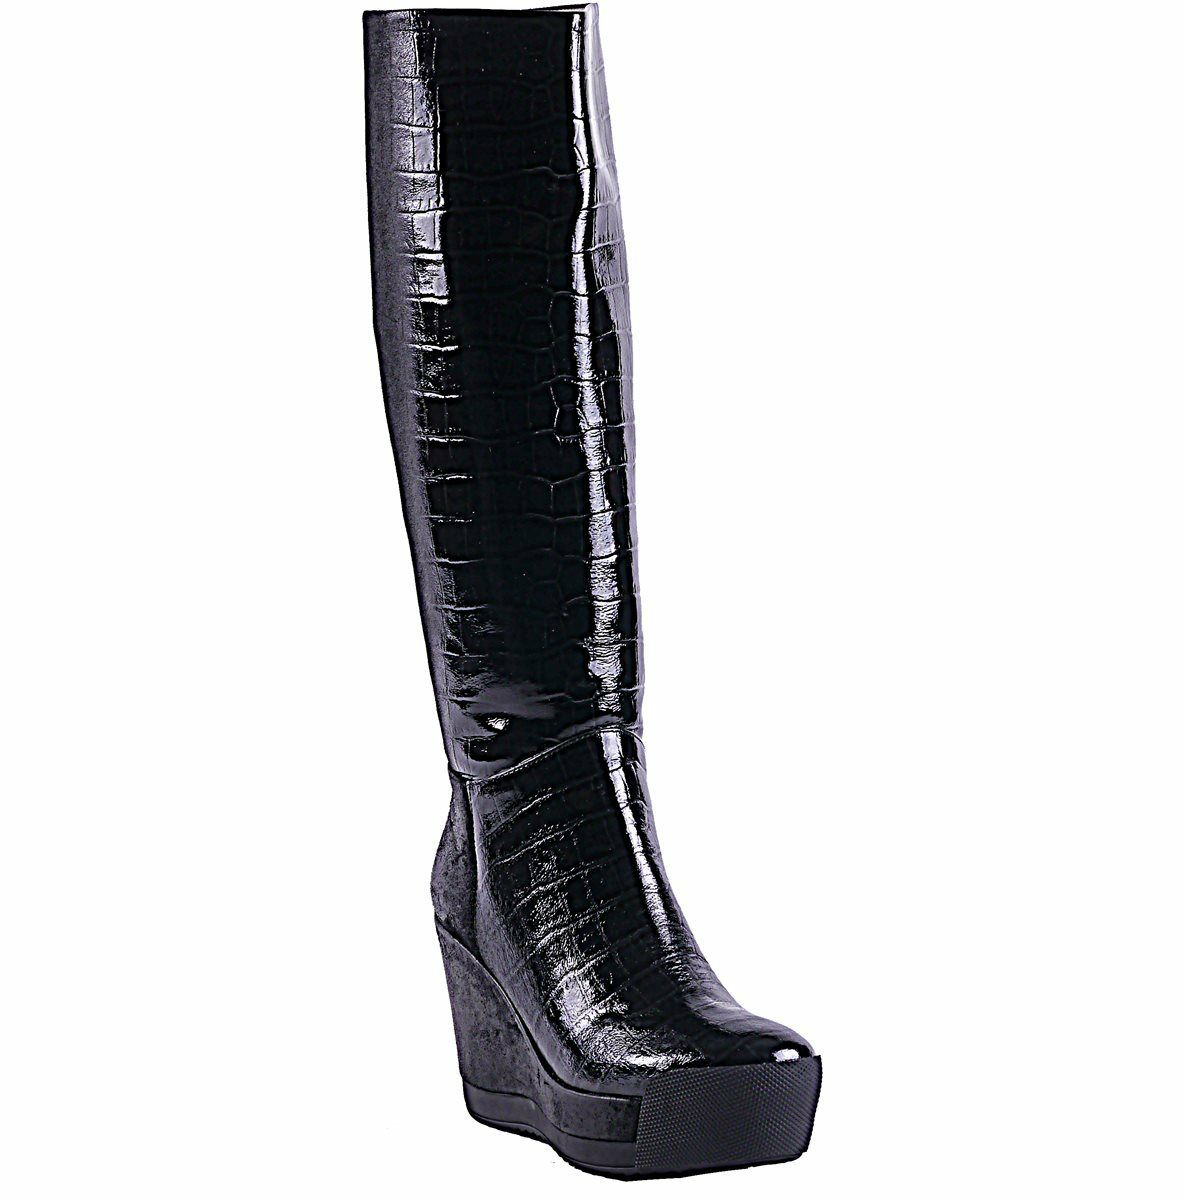 GEOX High designed by Patrick Cox Ziggy Damen High GEOX Stiefel Lack Leder Gr: 40,41 Neu c1be65